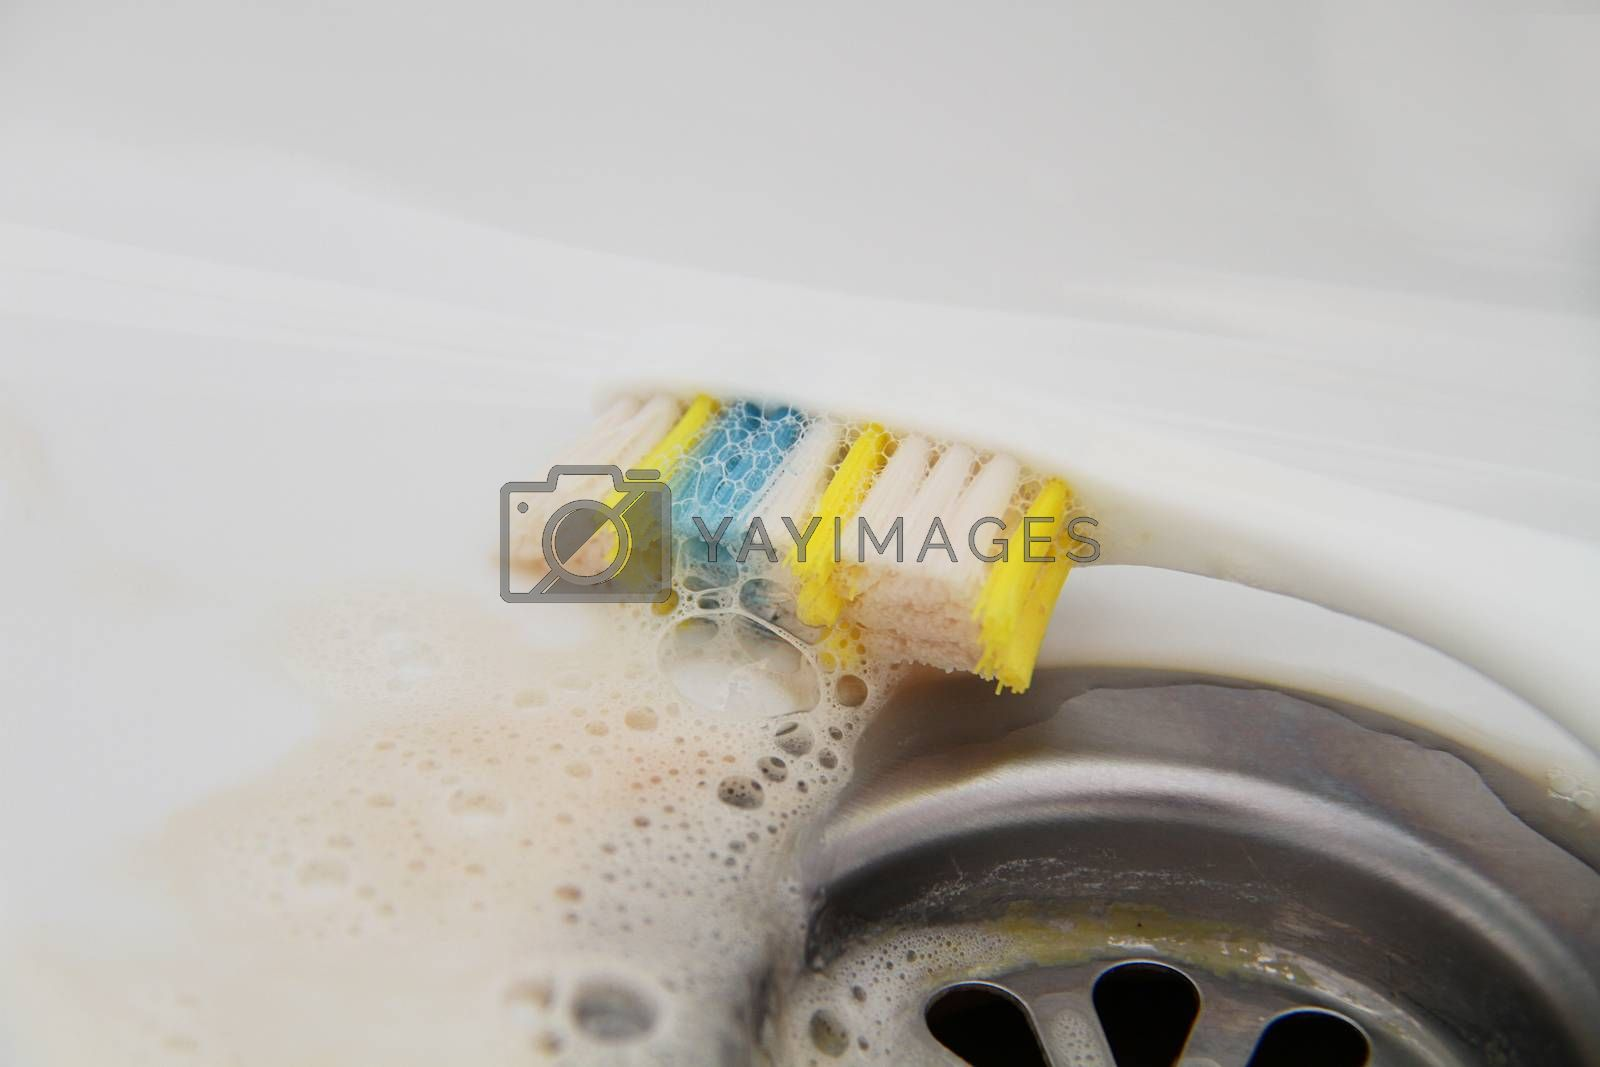 Blood and toothpaste on the toothbrush